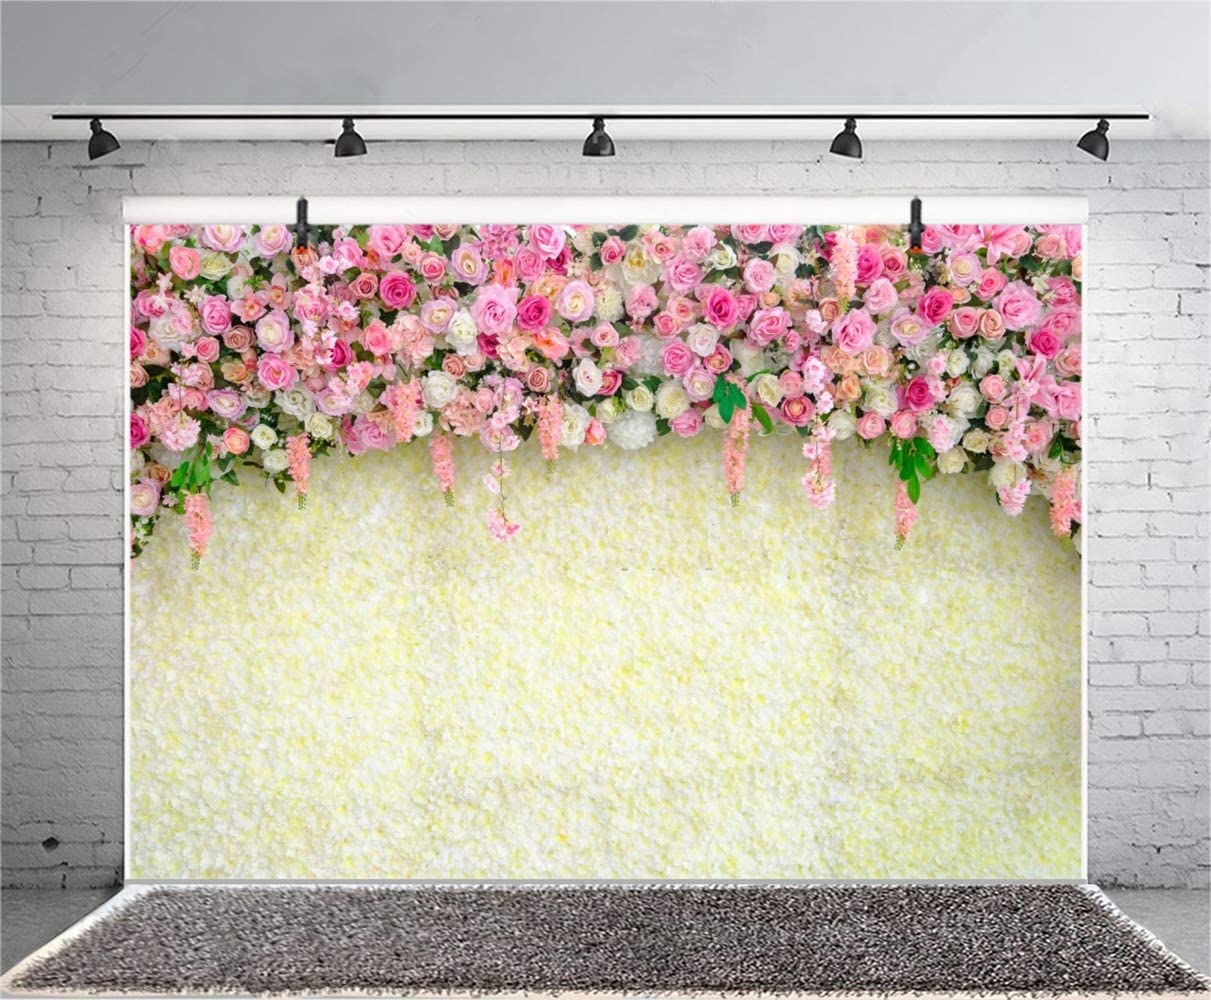 Sweety Pink Yellow Rose Flower Wall Backdrop 8x6.5ft Polyester Graceful Floral Wedding Ceremony Stage Photo Booth Background Bridal Shower Bride Groom Portrait Event Activities Shoot